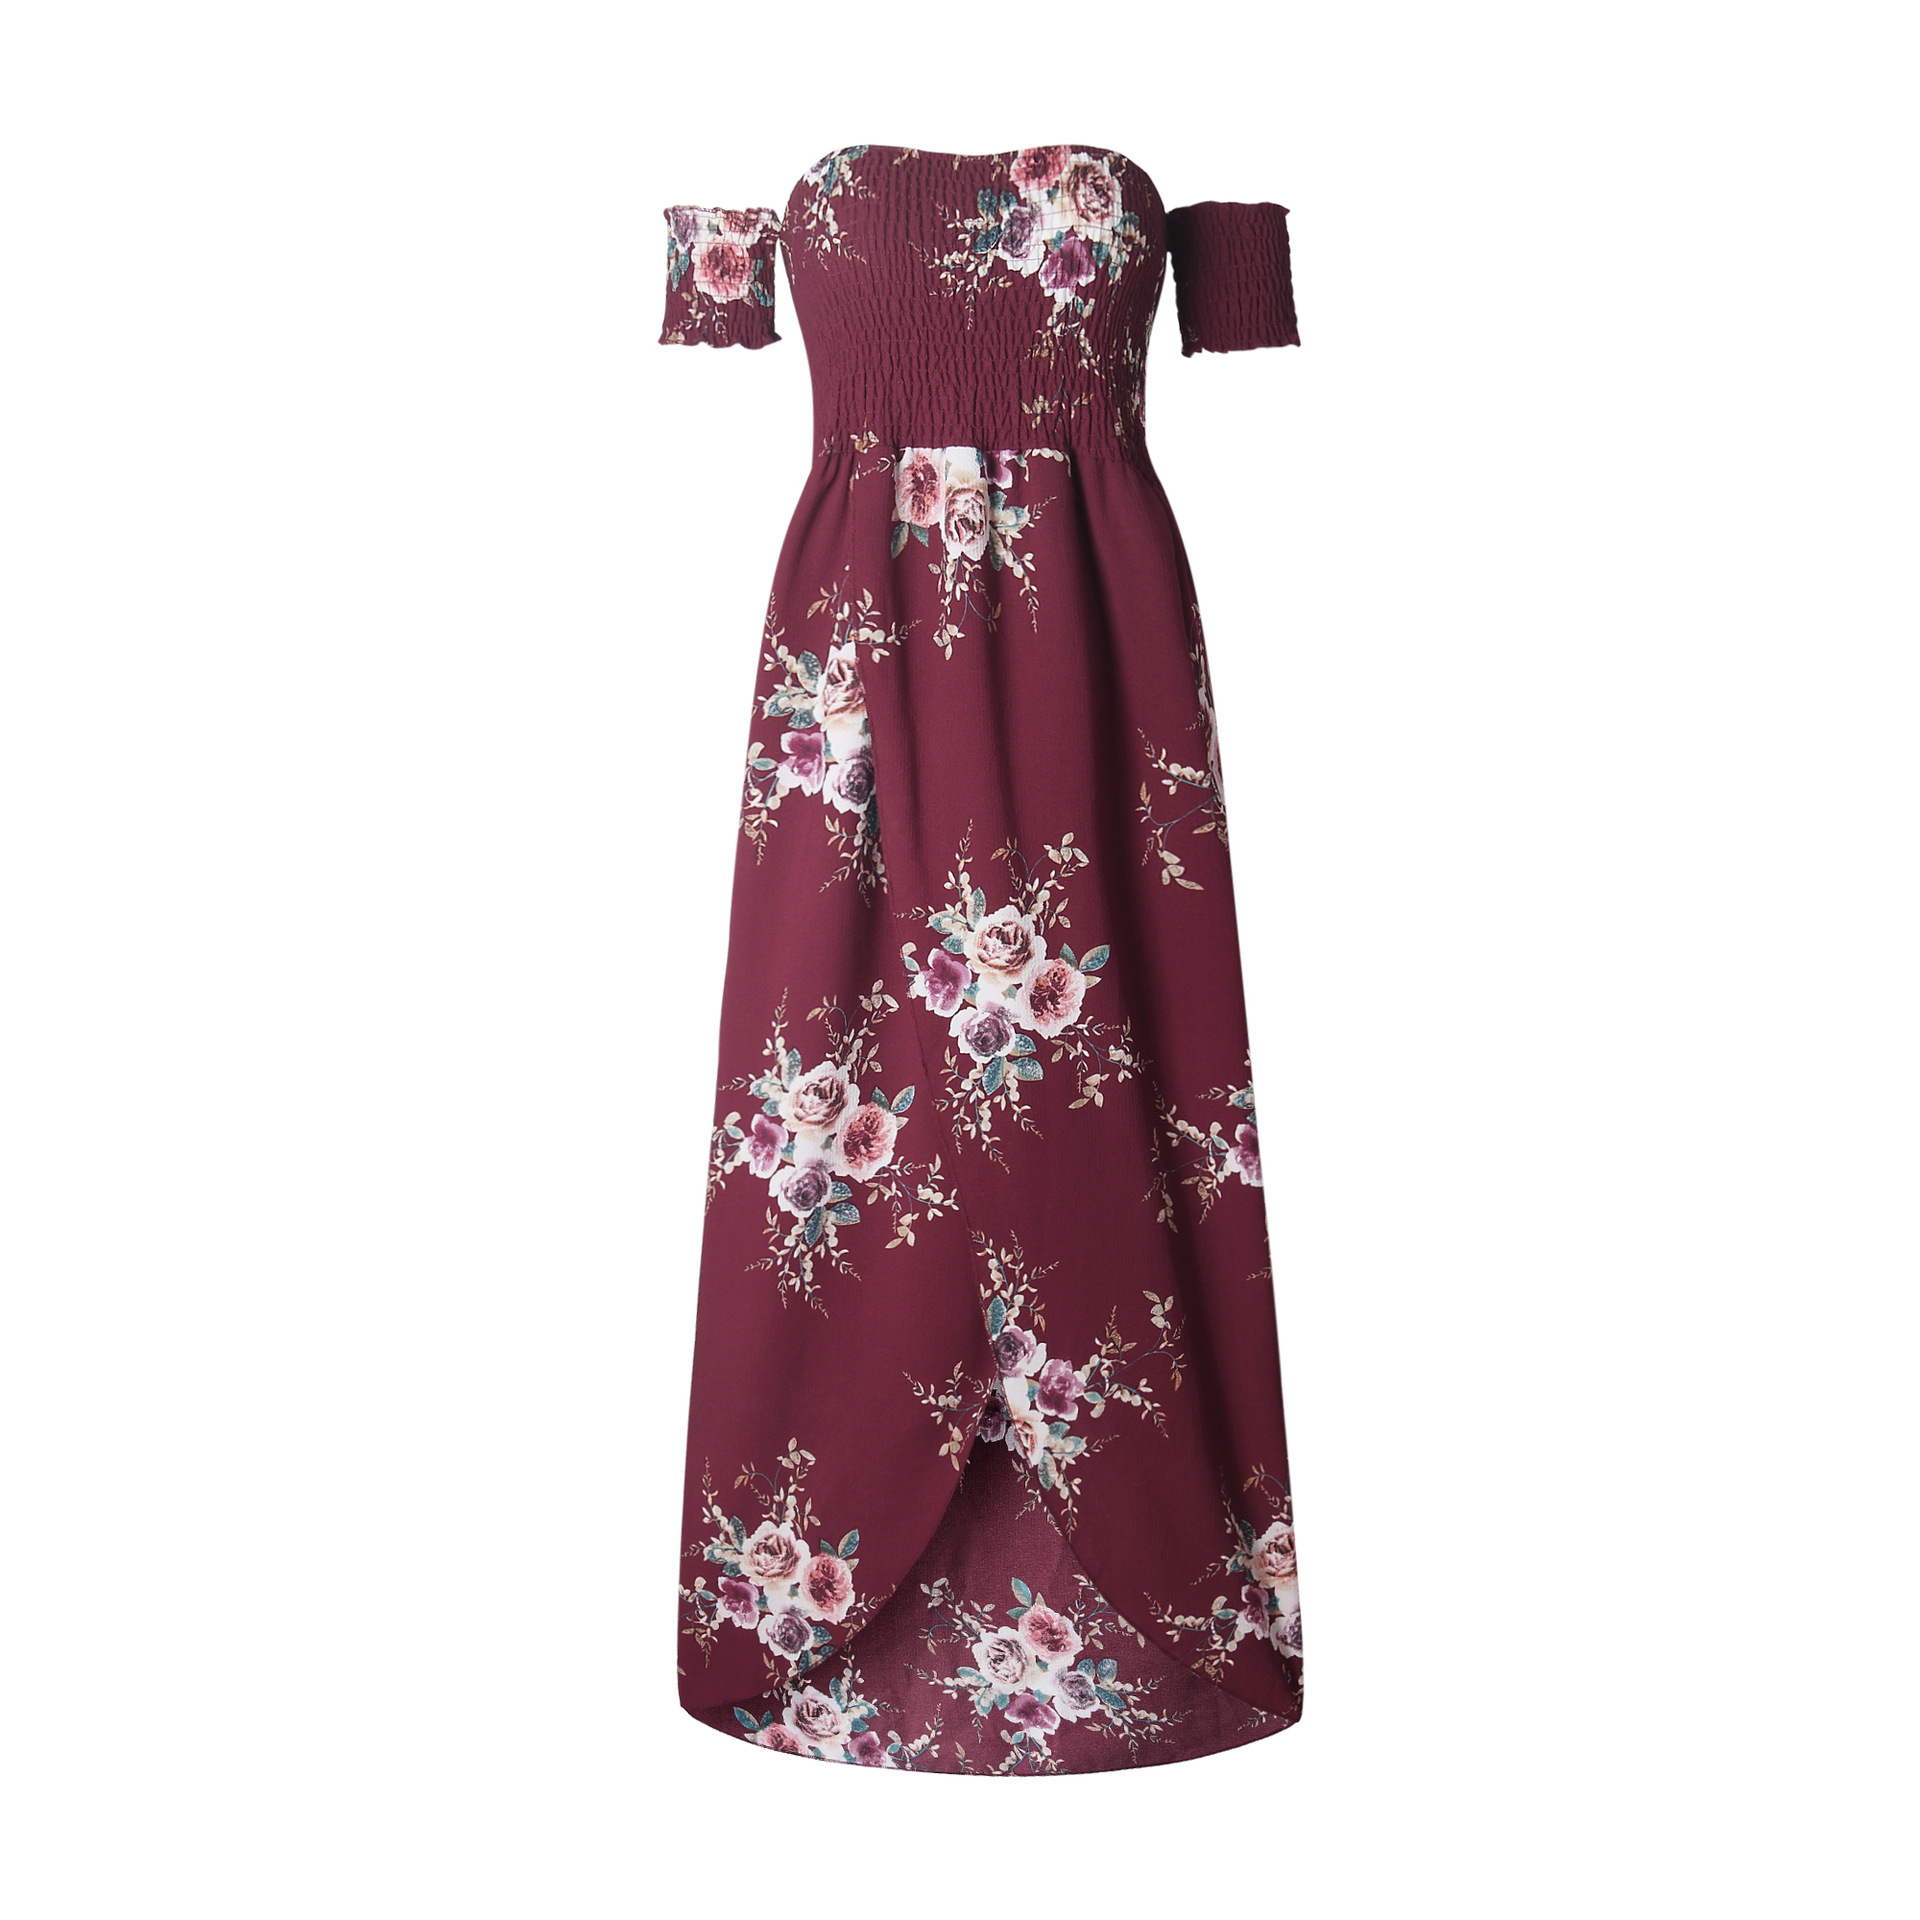 de8e6724fbea Boho Beach Dress Summer Women Off Shoulder High Low Chiffon Floral Print  Maxi SunDress burgundy